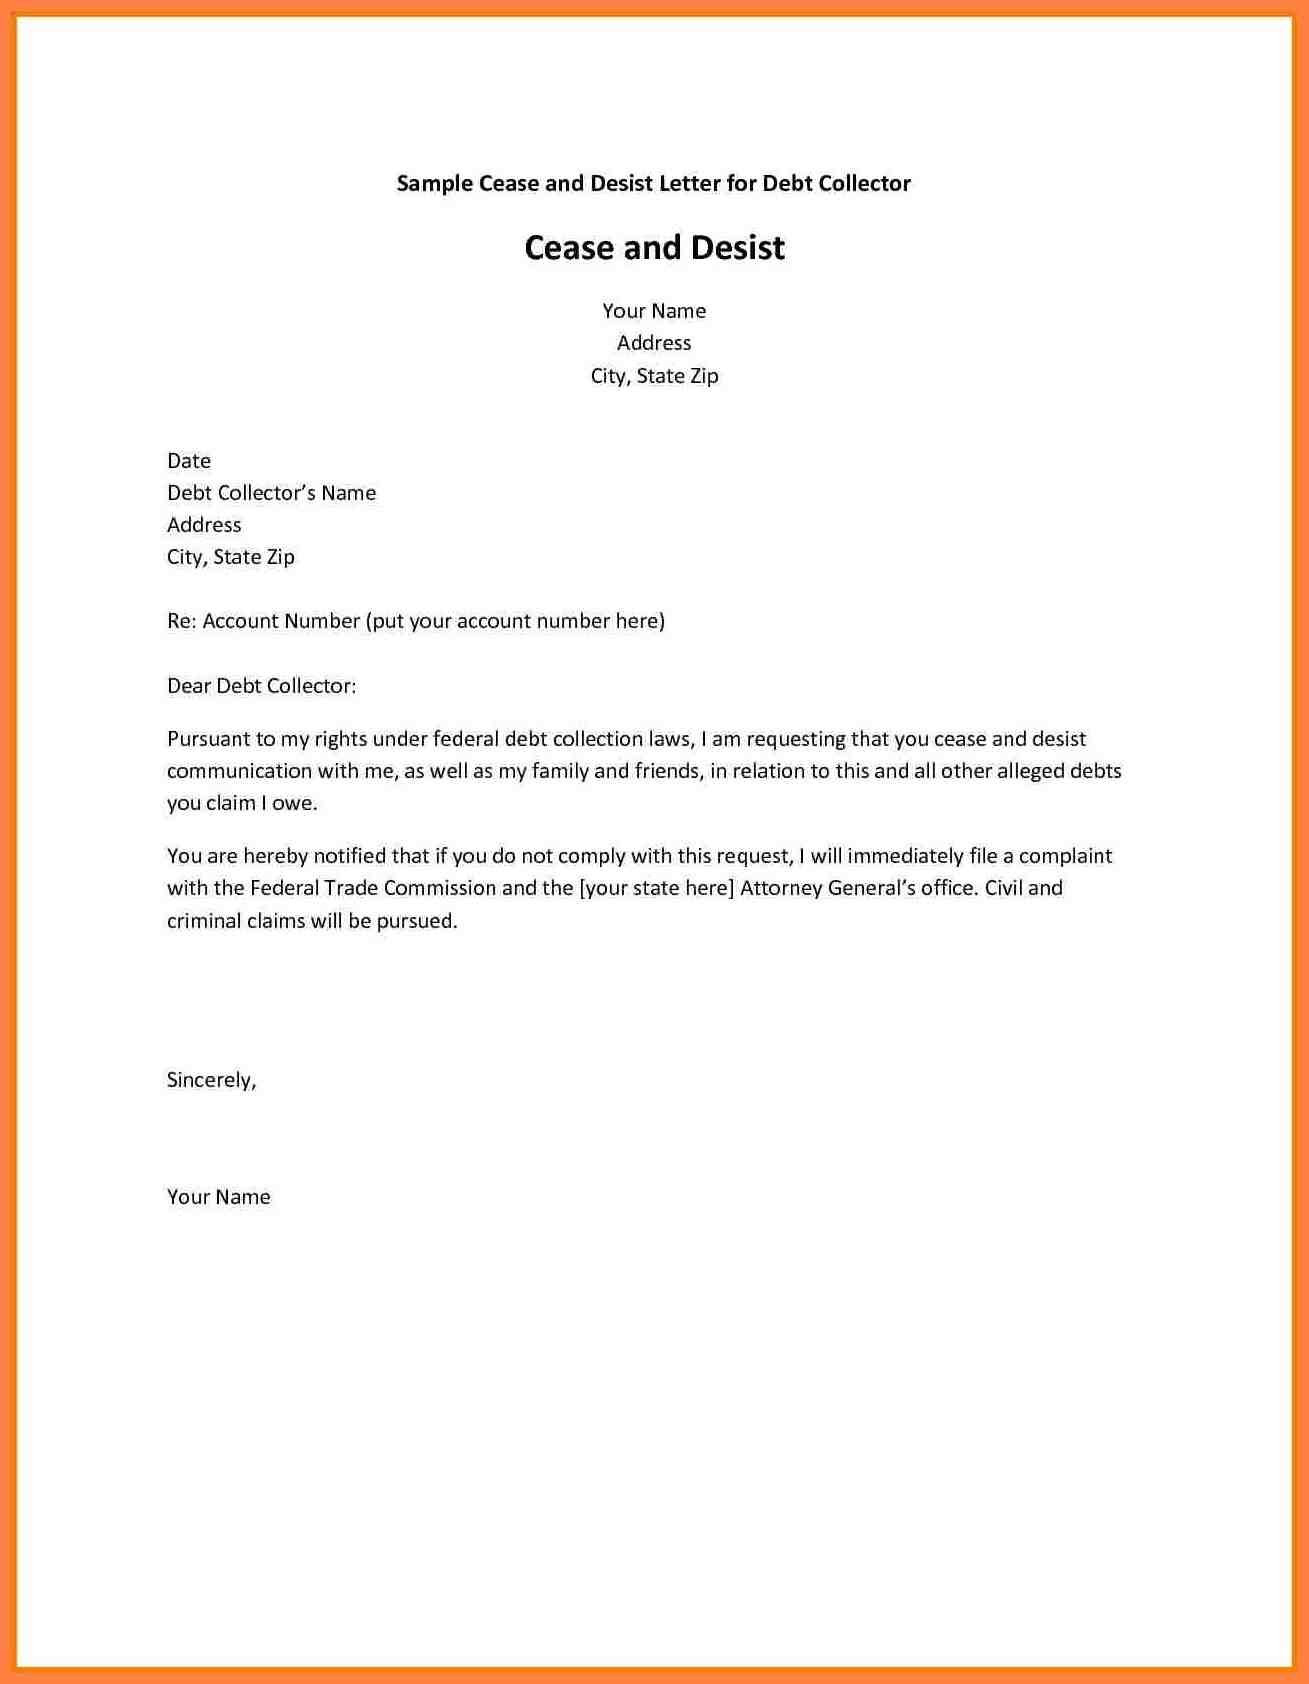 Cease and desist creditor letter template examples for Cease and desist letter template for debt collectors